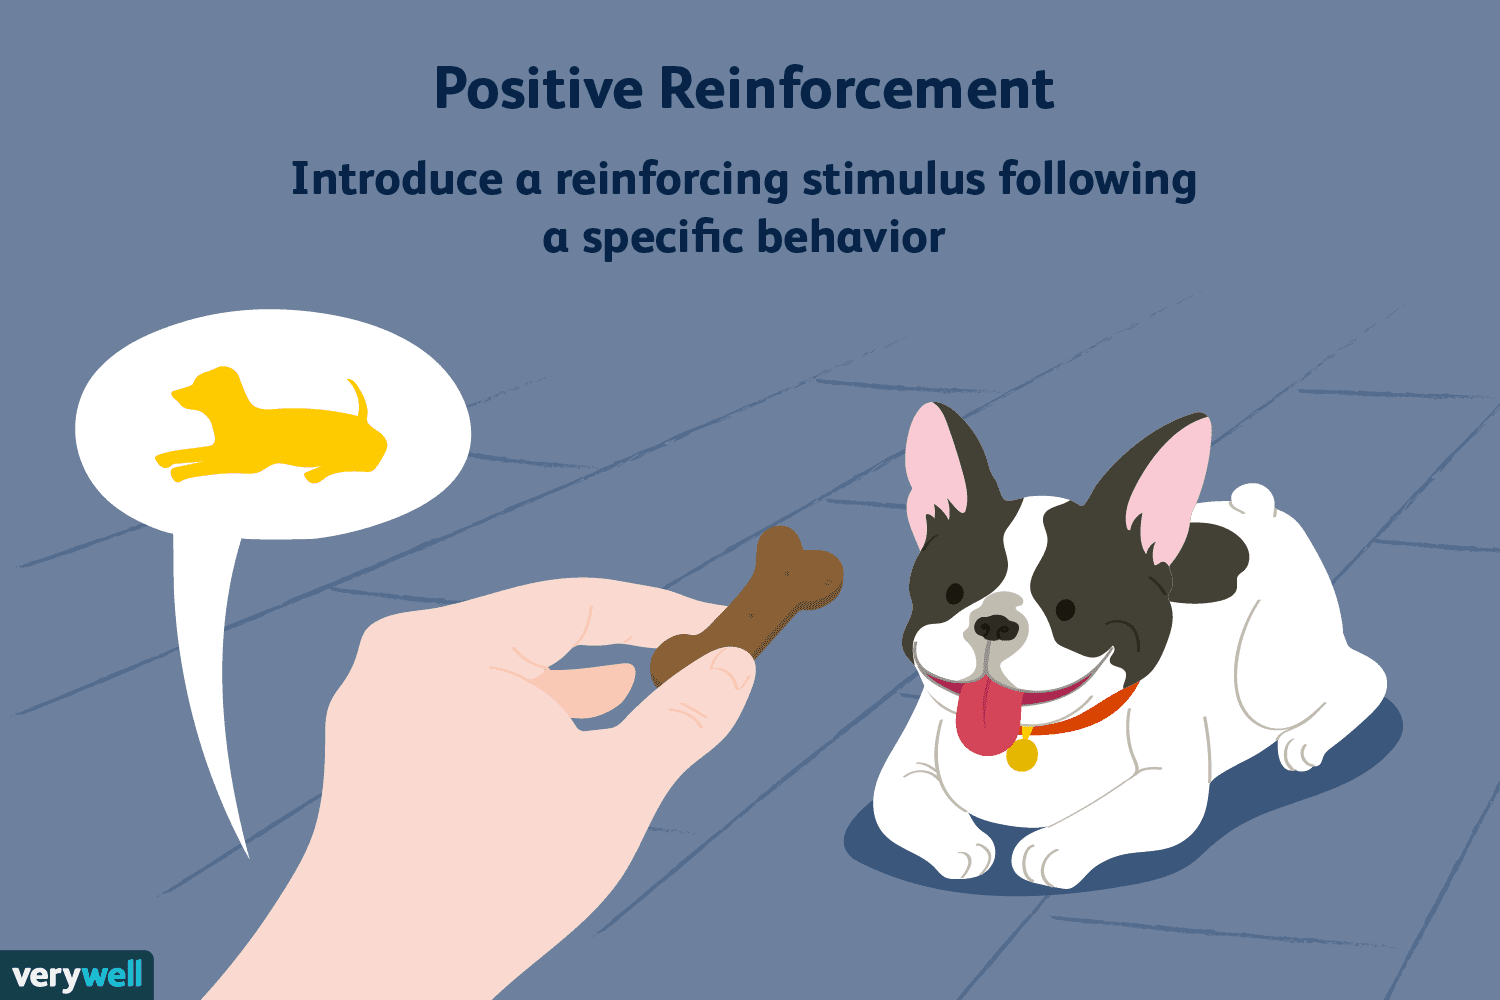 Positive Reinforcement Can Help Favorable Behaviors